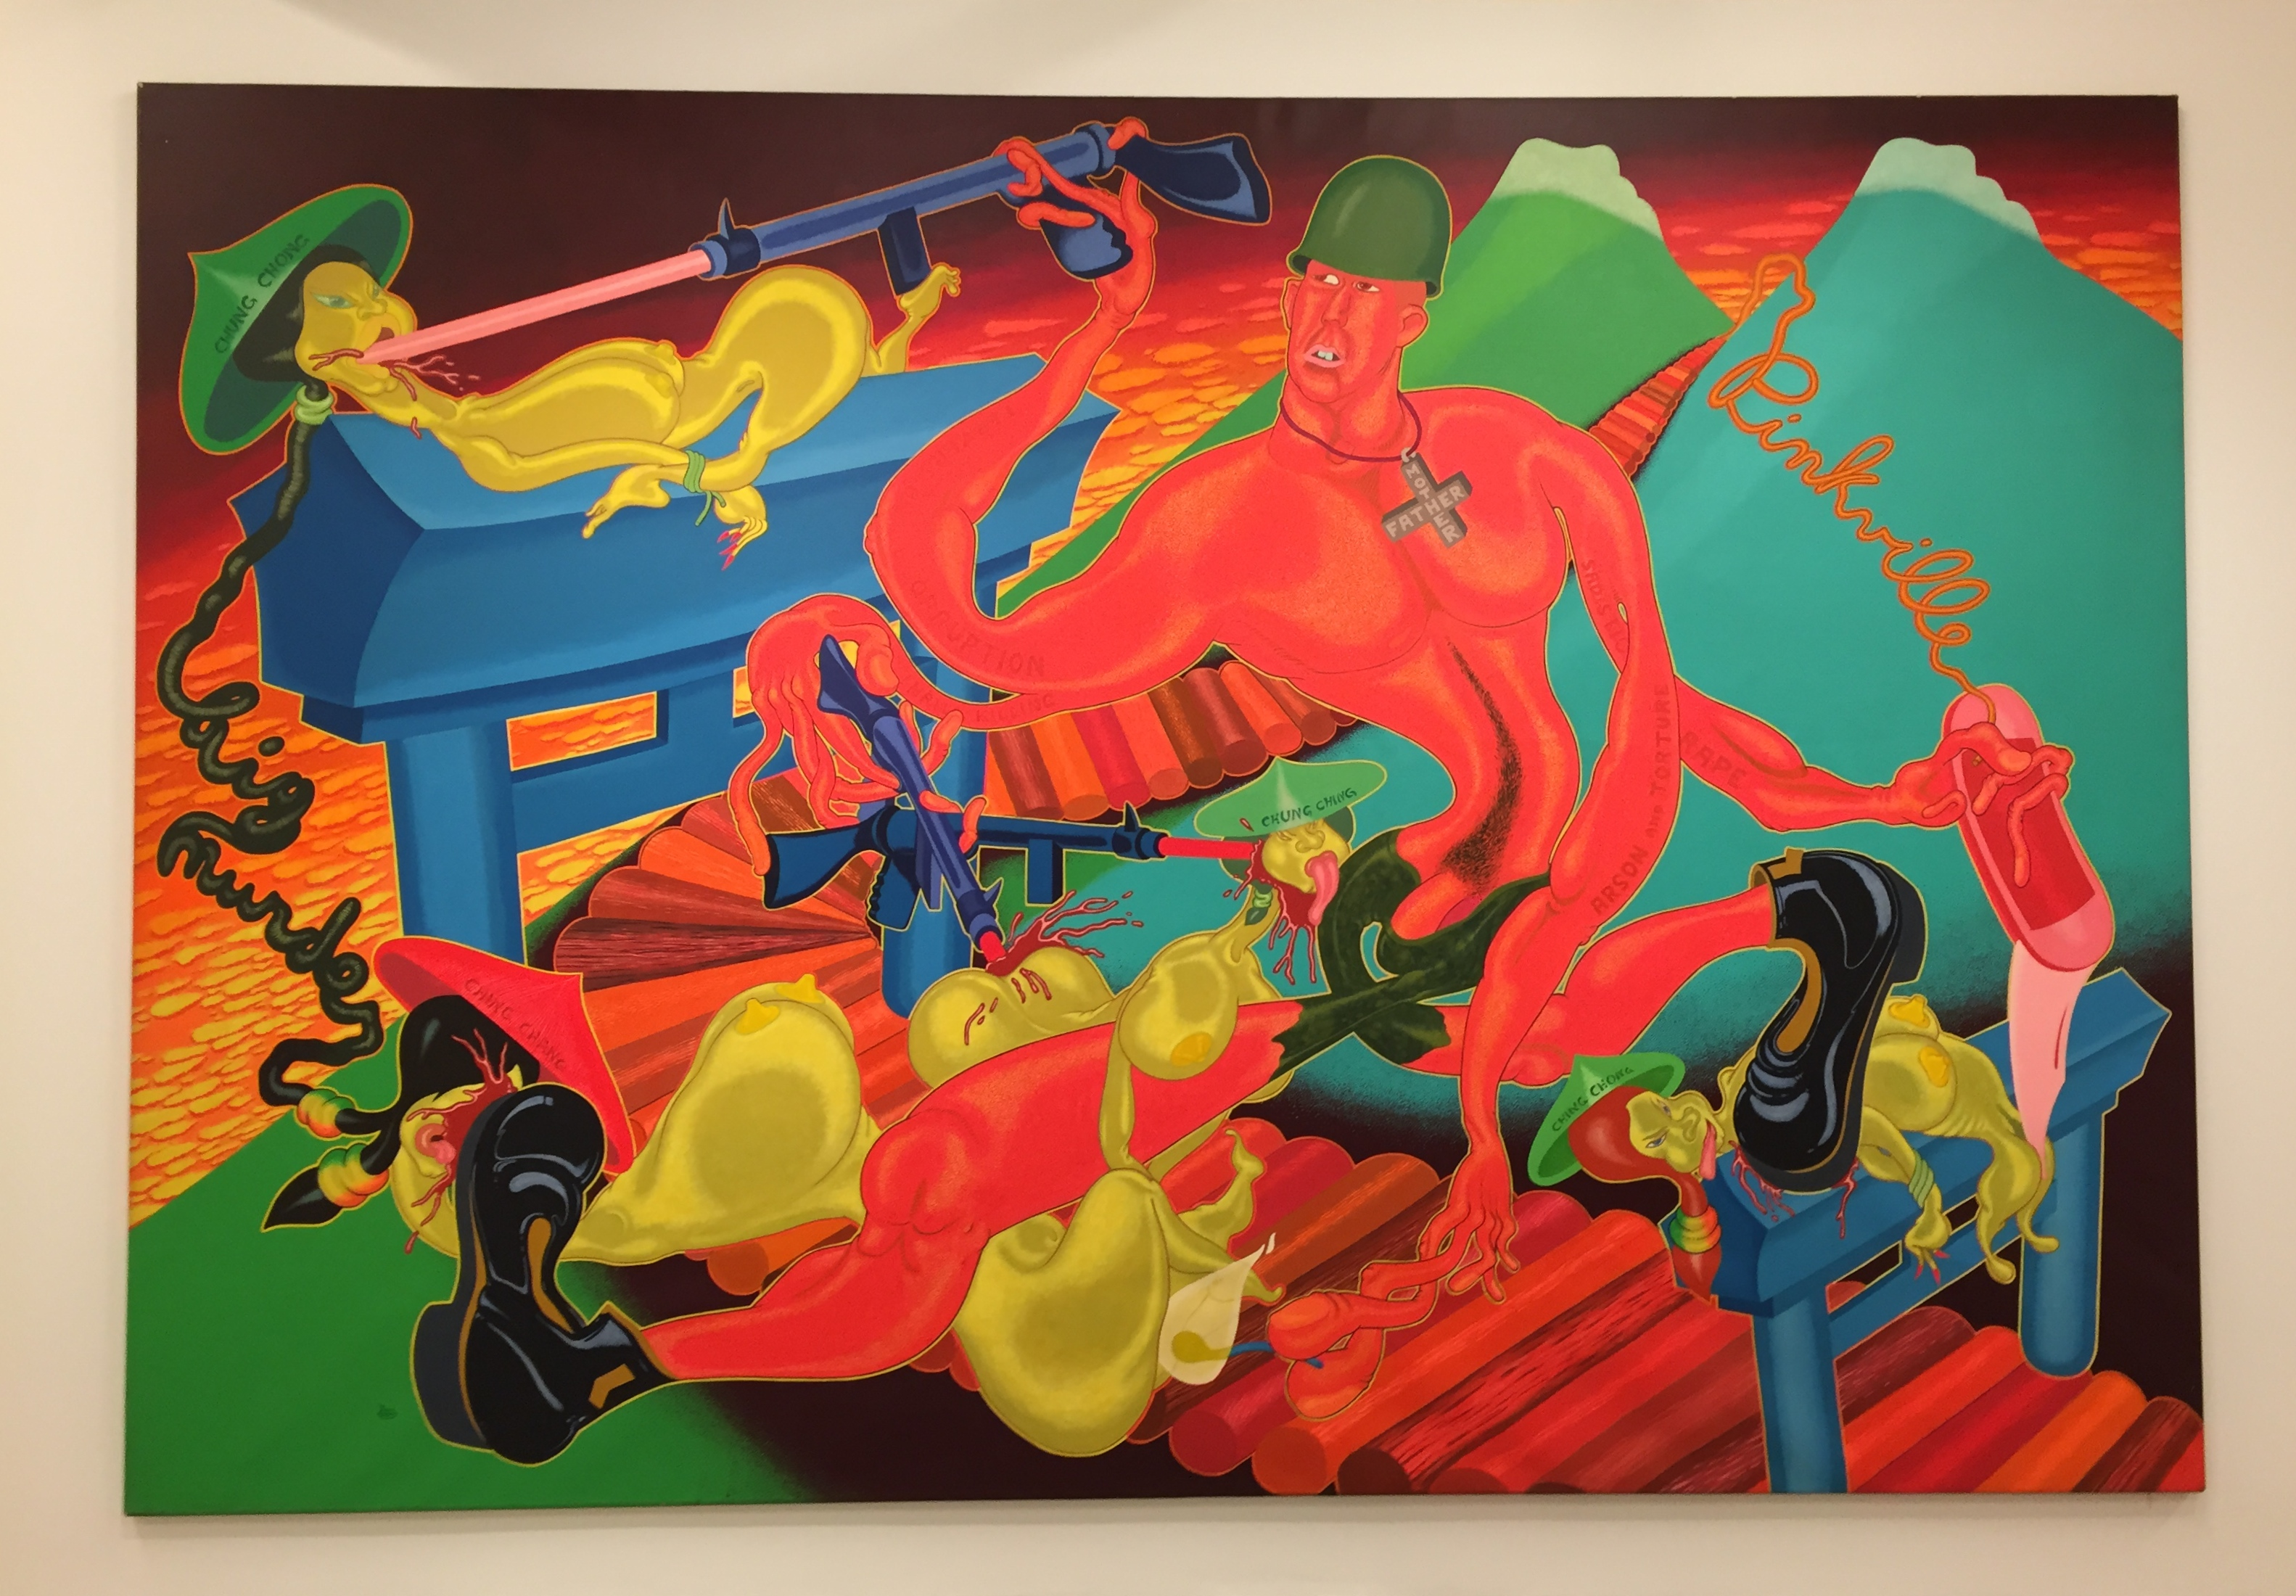 Peter Saul Pinkville, 1970 Acrylic on Canvas 90 x 131 inches